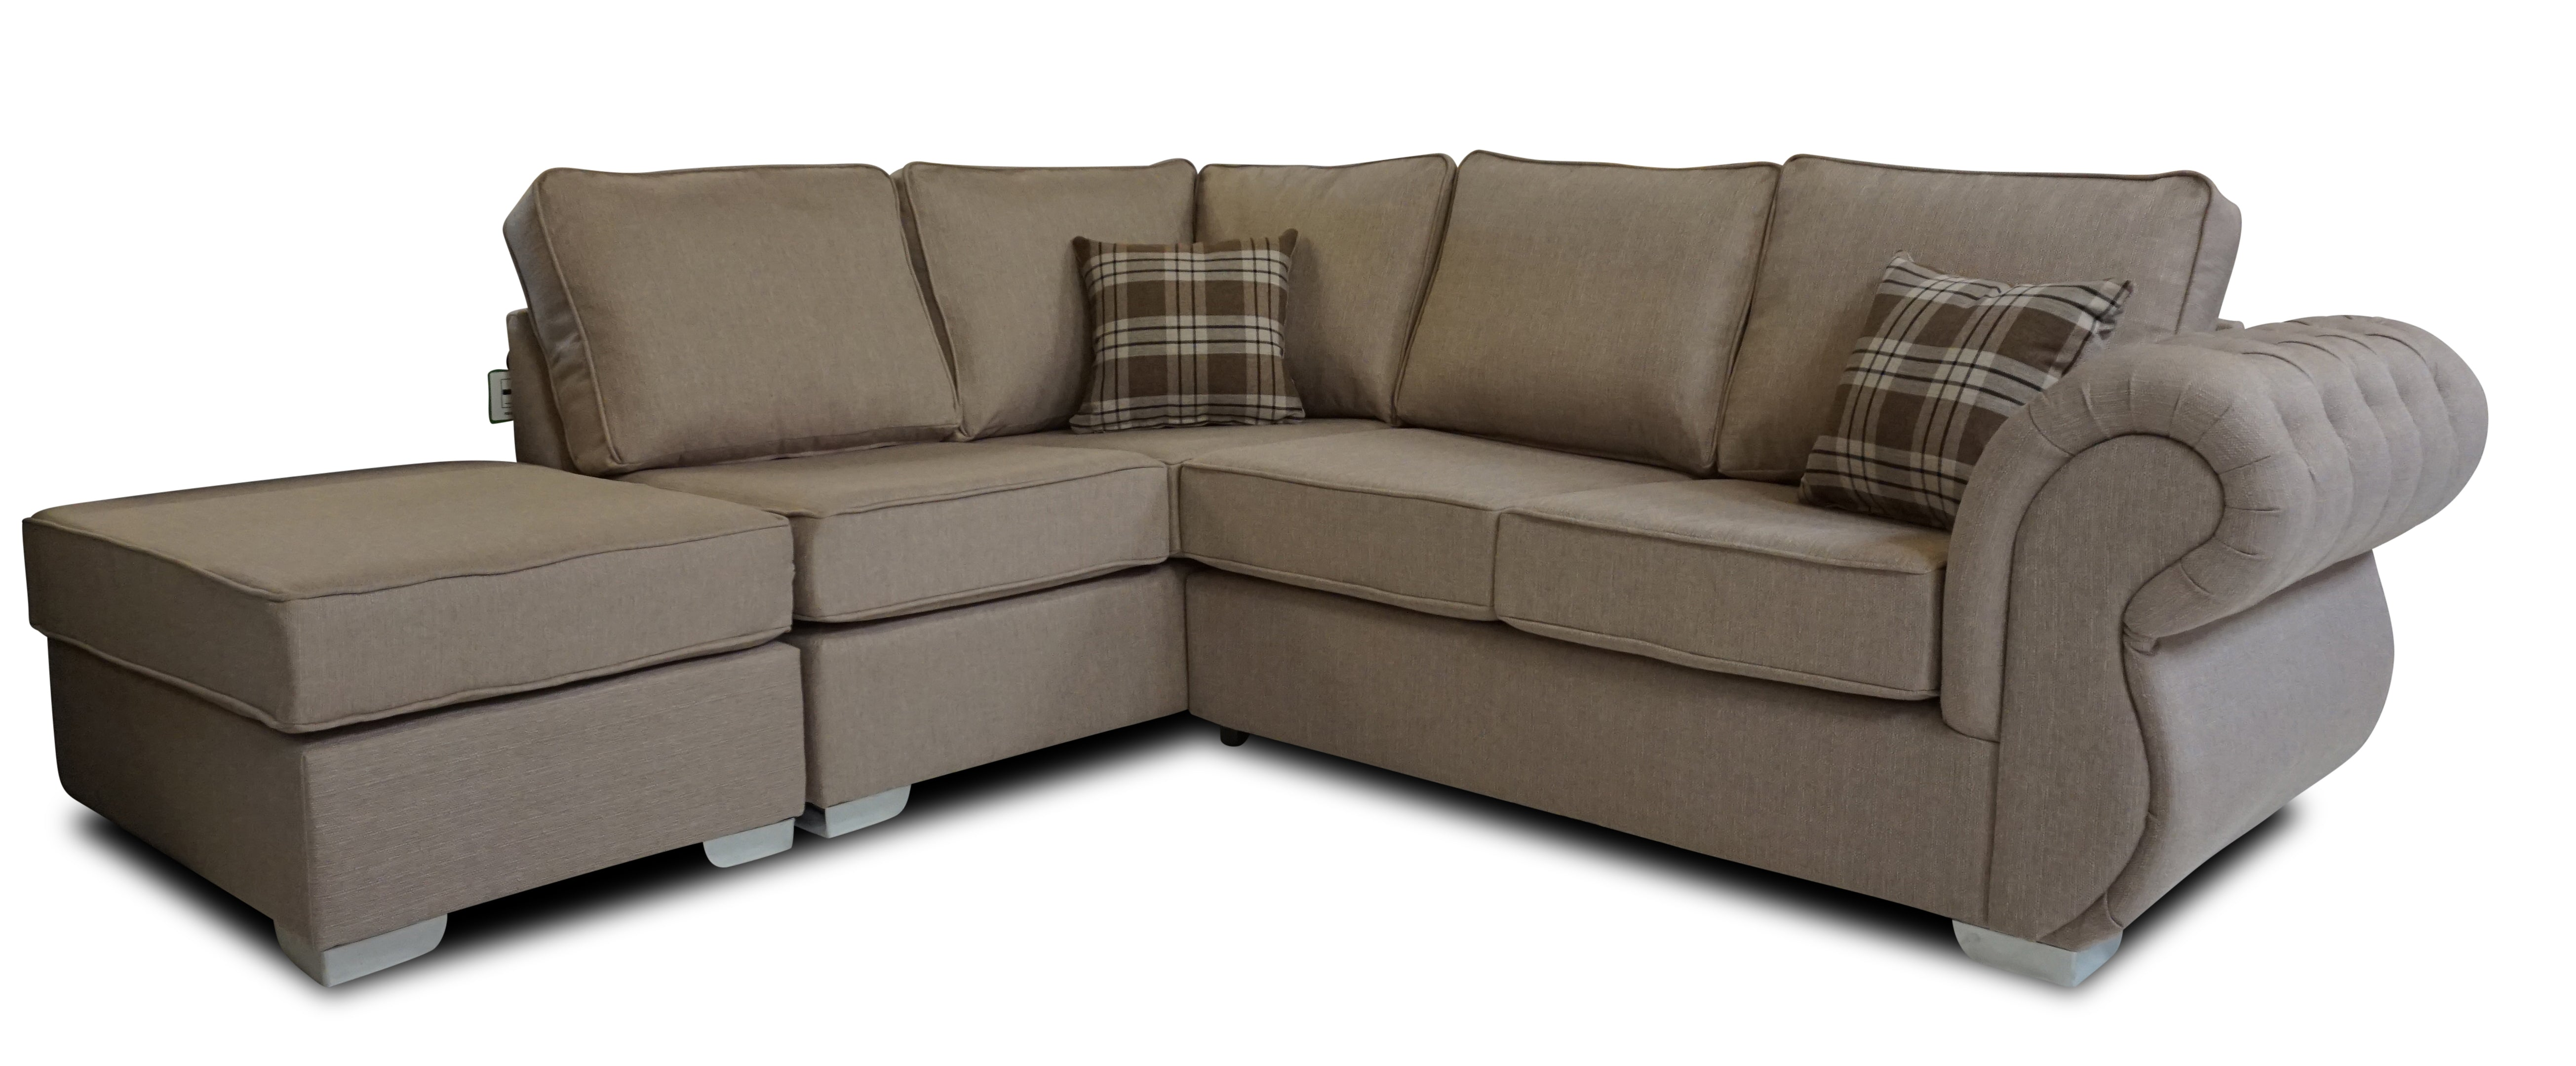 Fabric Sofas Near Skelton